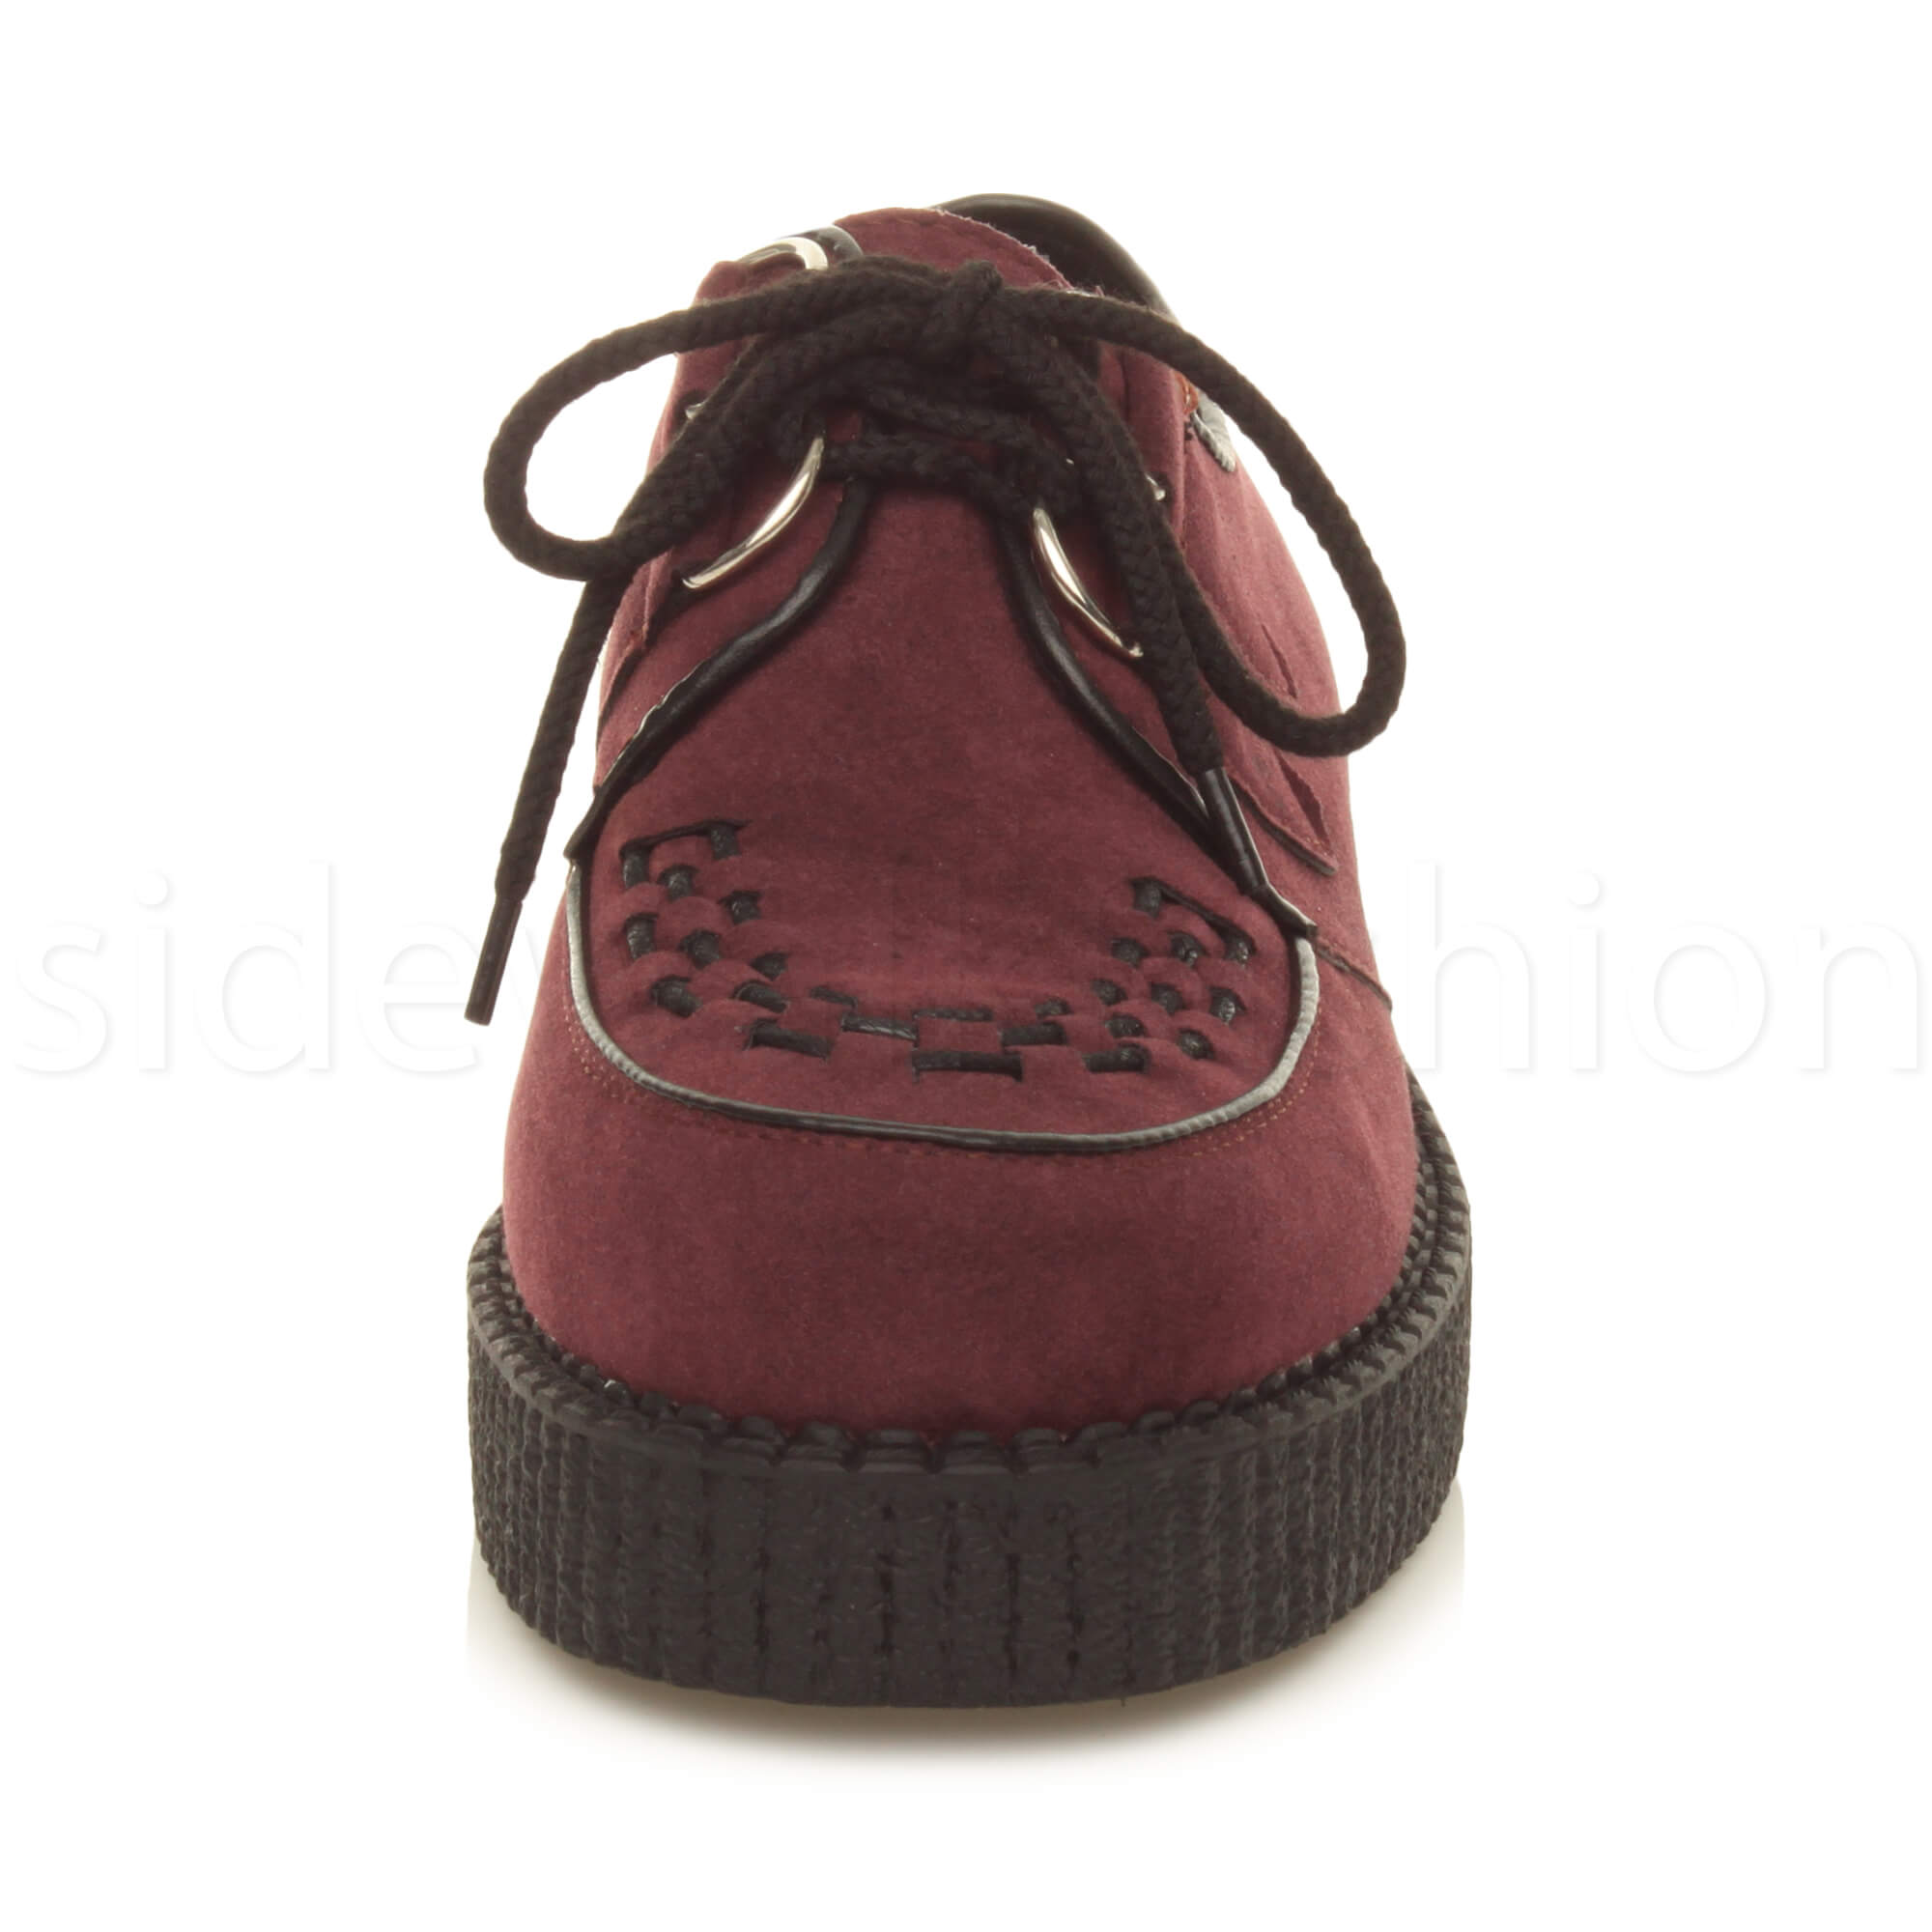 Womens-ladies-flat-platform-wedge-lace-up-goth-punk-creepers-shoes-boots-size miniatura 37